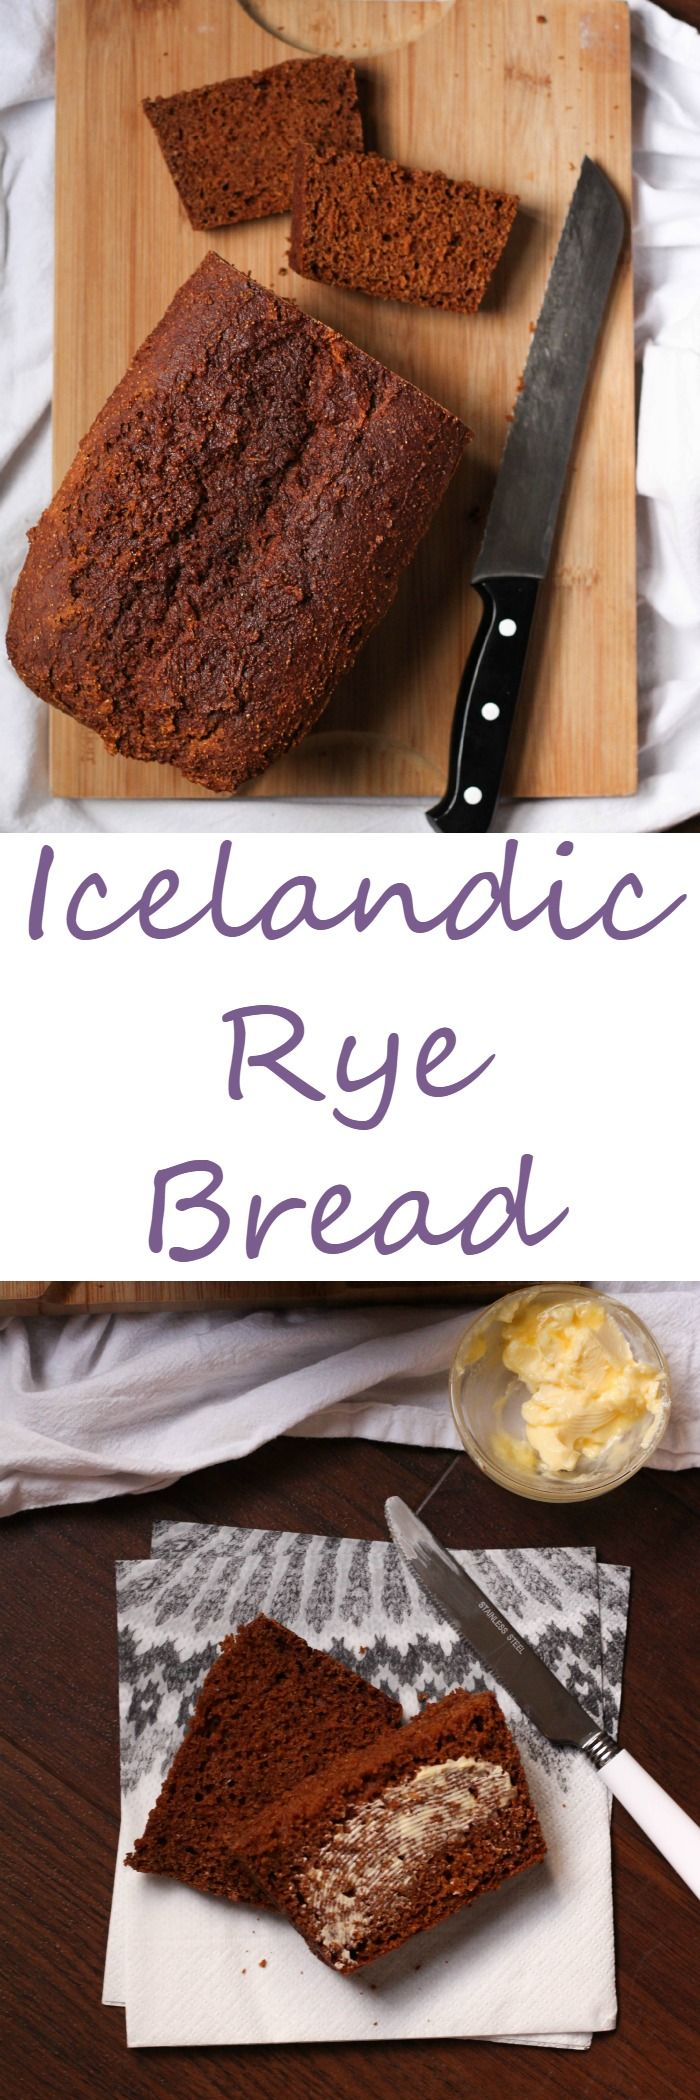 Icelandic rye bread is hearty, sweet, and delicious. Cooked slowly at a low temperature it's great to make on a lazy winter day inside.